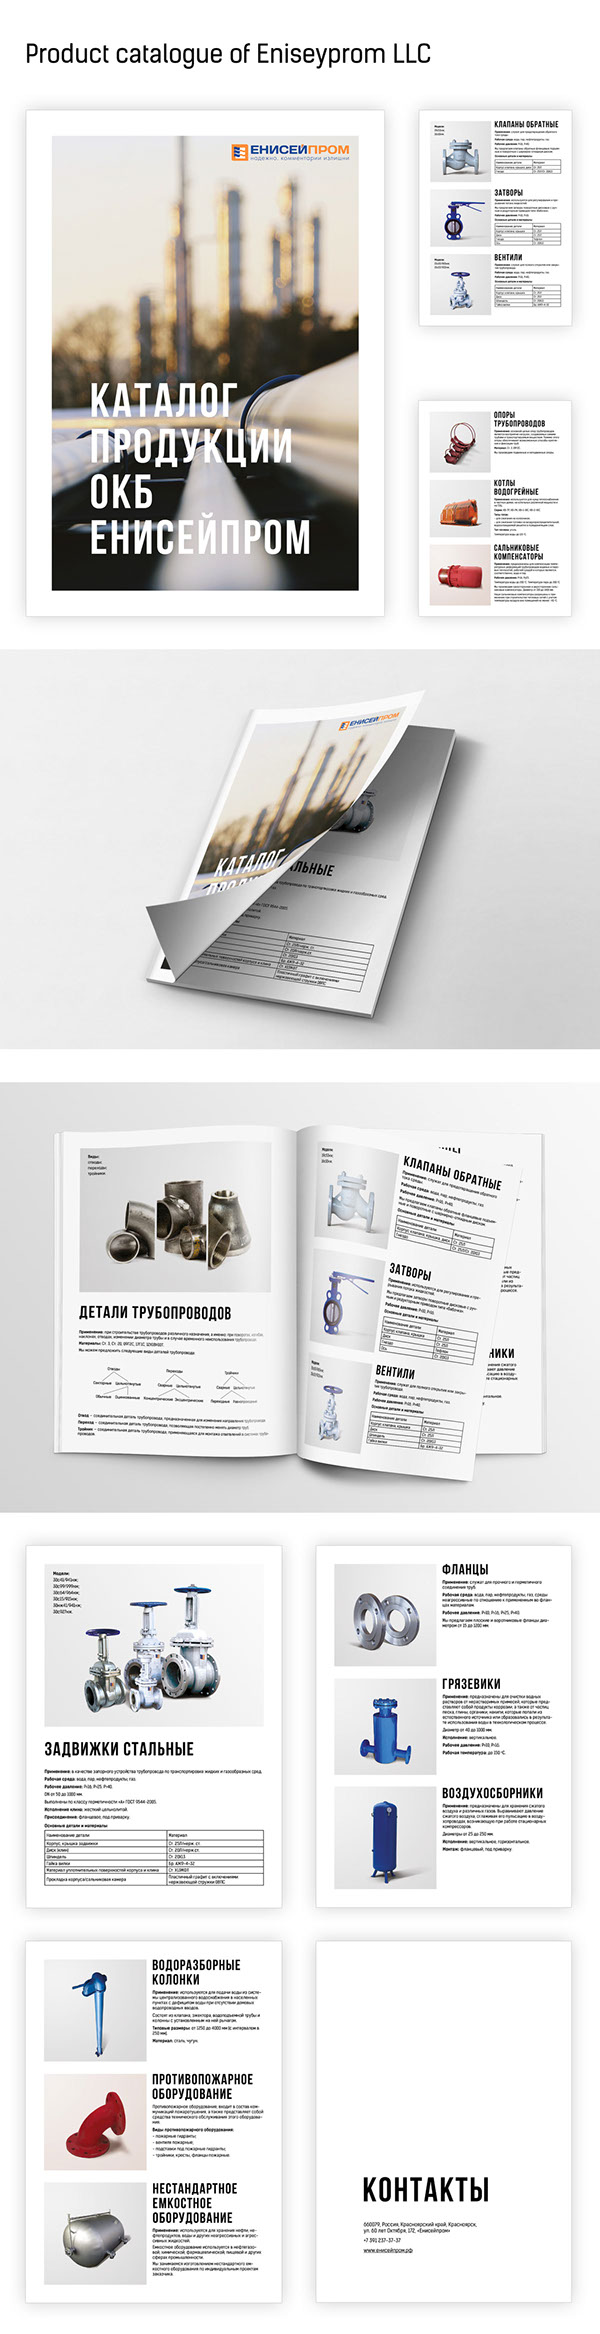 Product catalogue of Eniseyprom LLC by Konstantin Mozgovoy, via Behance